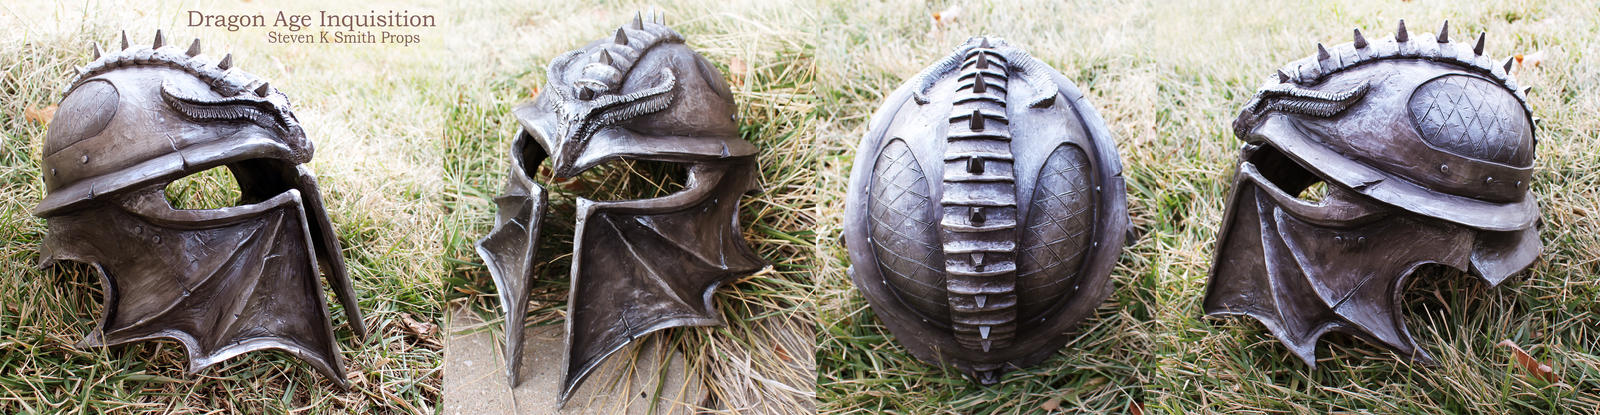 http://fc04.deviantart.net/fs71/i/2013/355/0/b/dragon_age_inquisition_helmet___full_view_by_captainhask-d6yr8ku.jpg